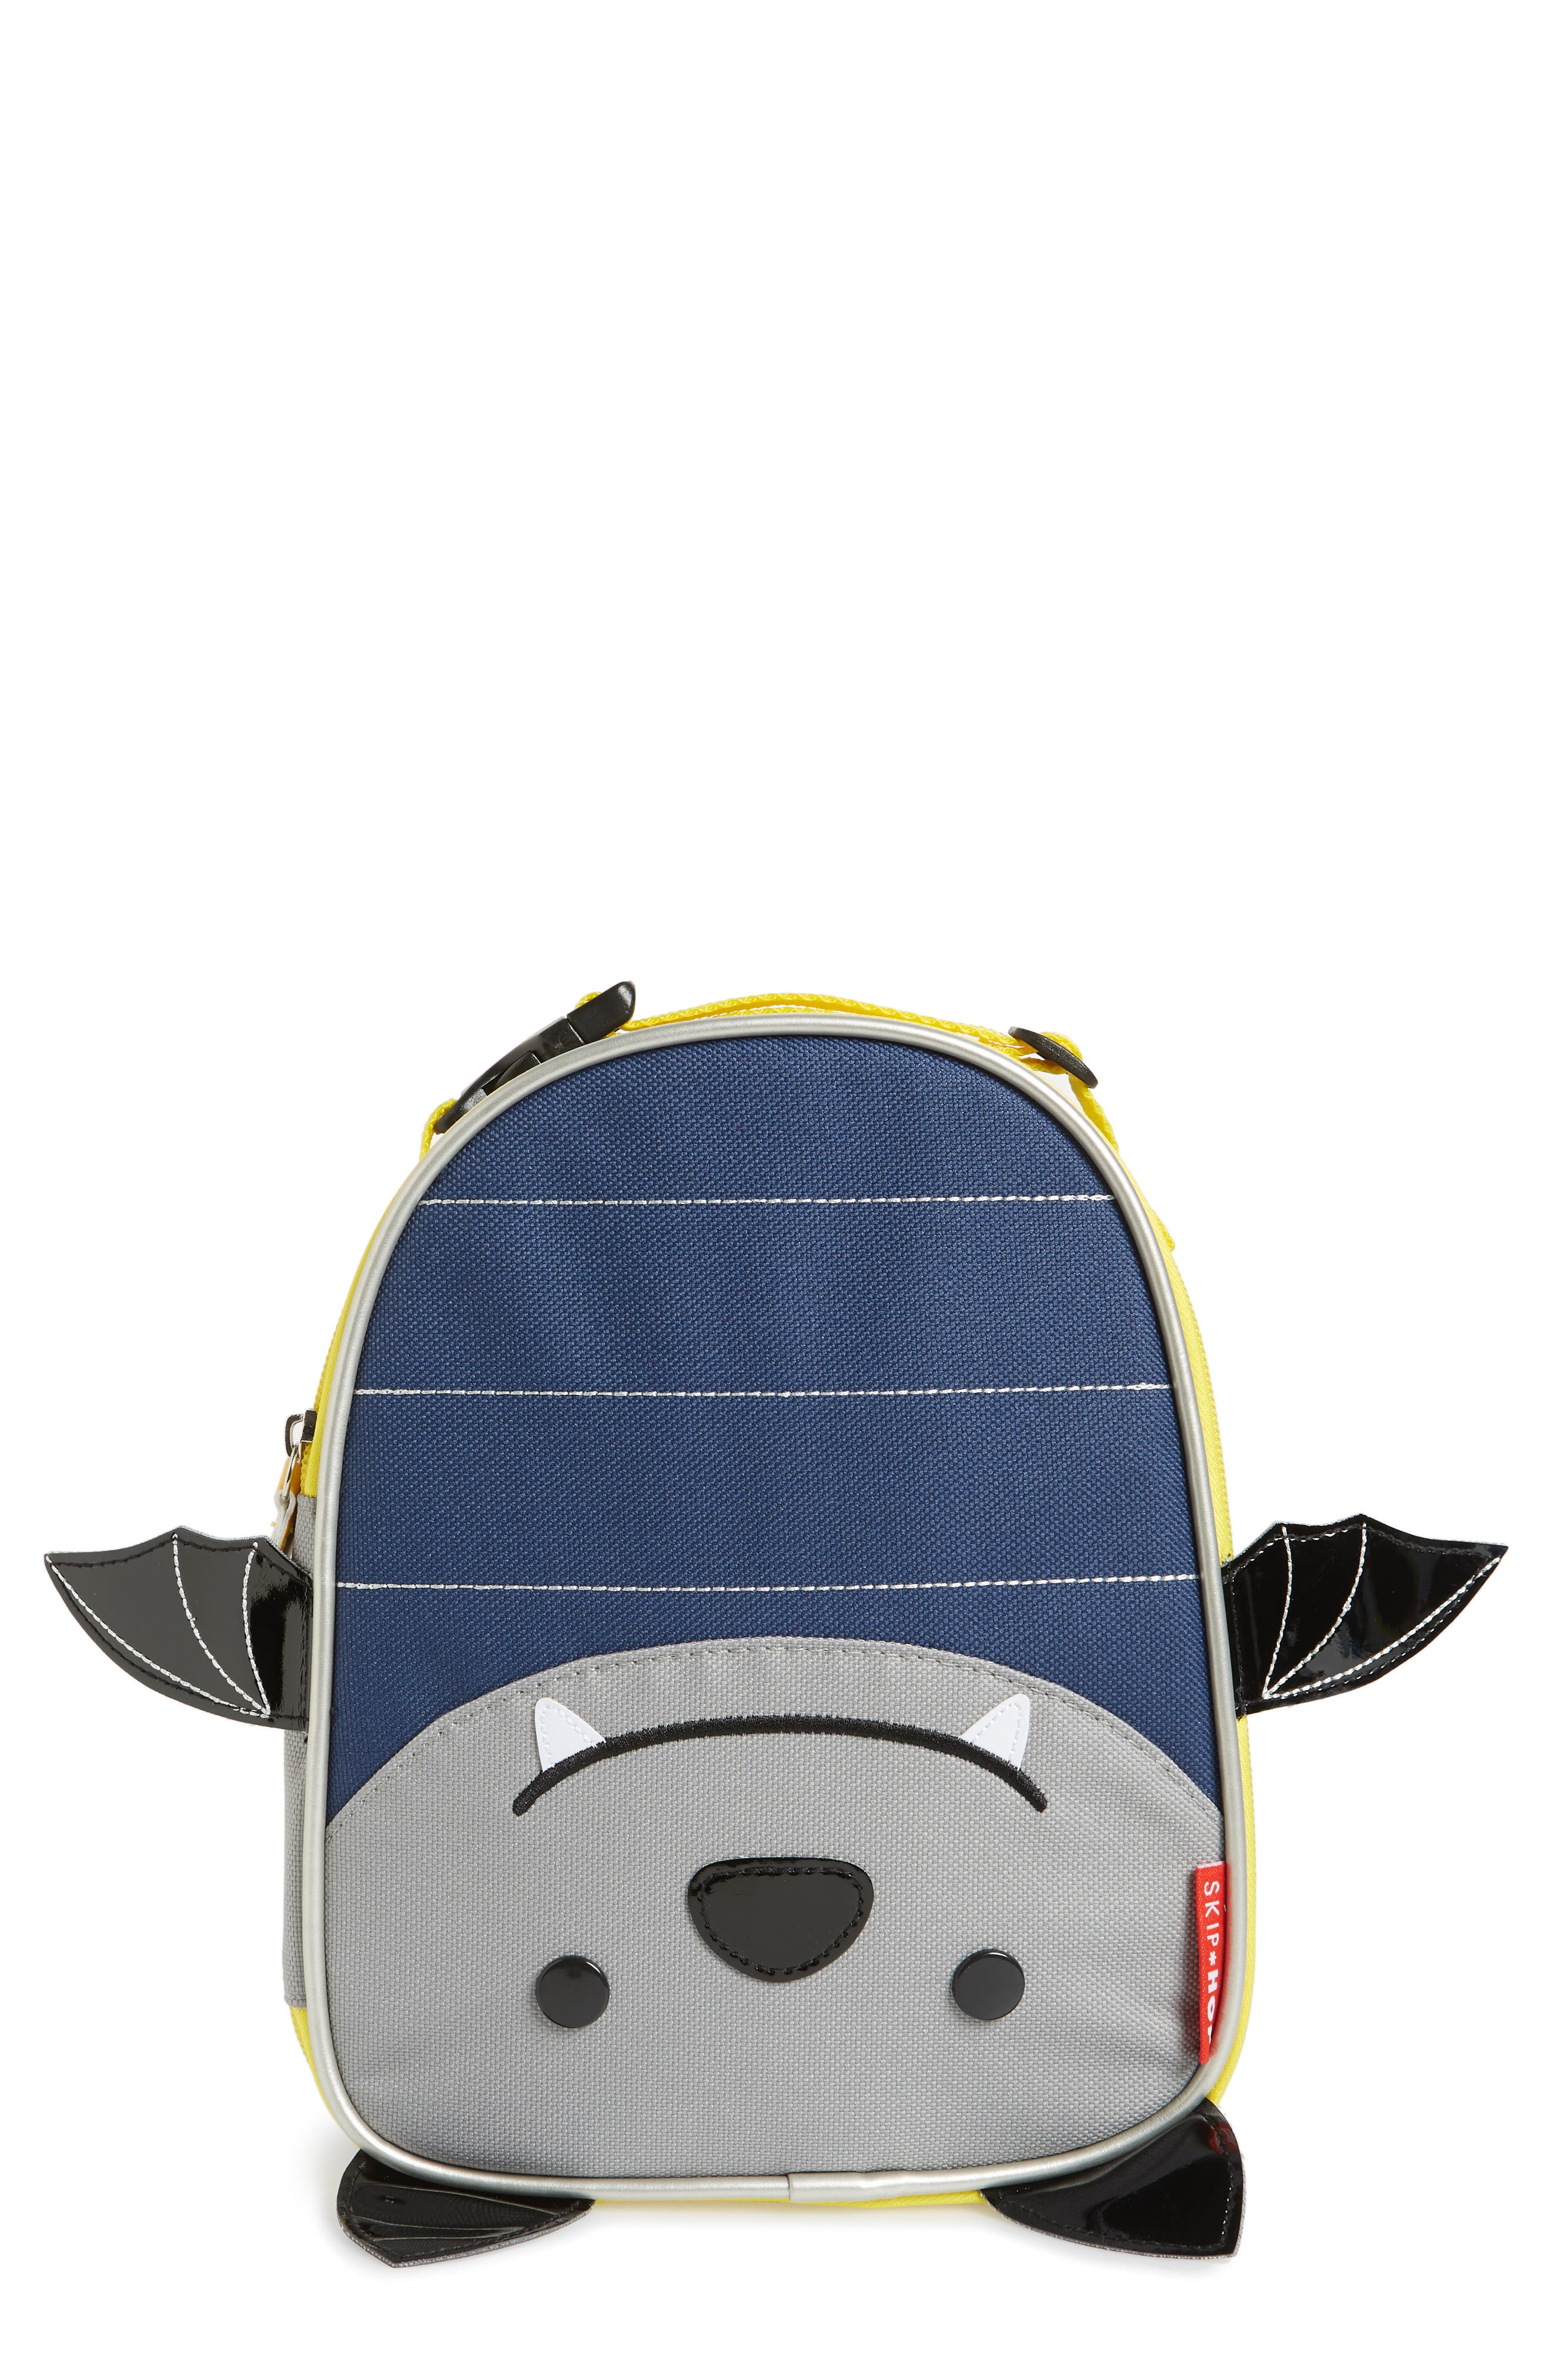 Zoo Lunch Bag,                             Main thumbnail 1, color,                             Navy Blue